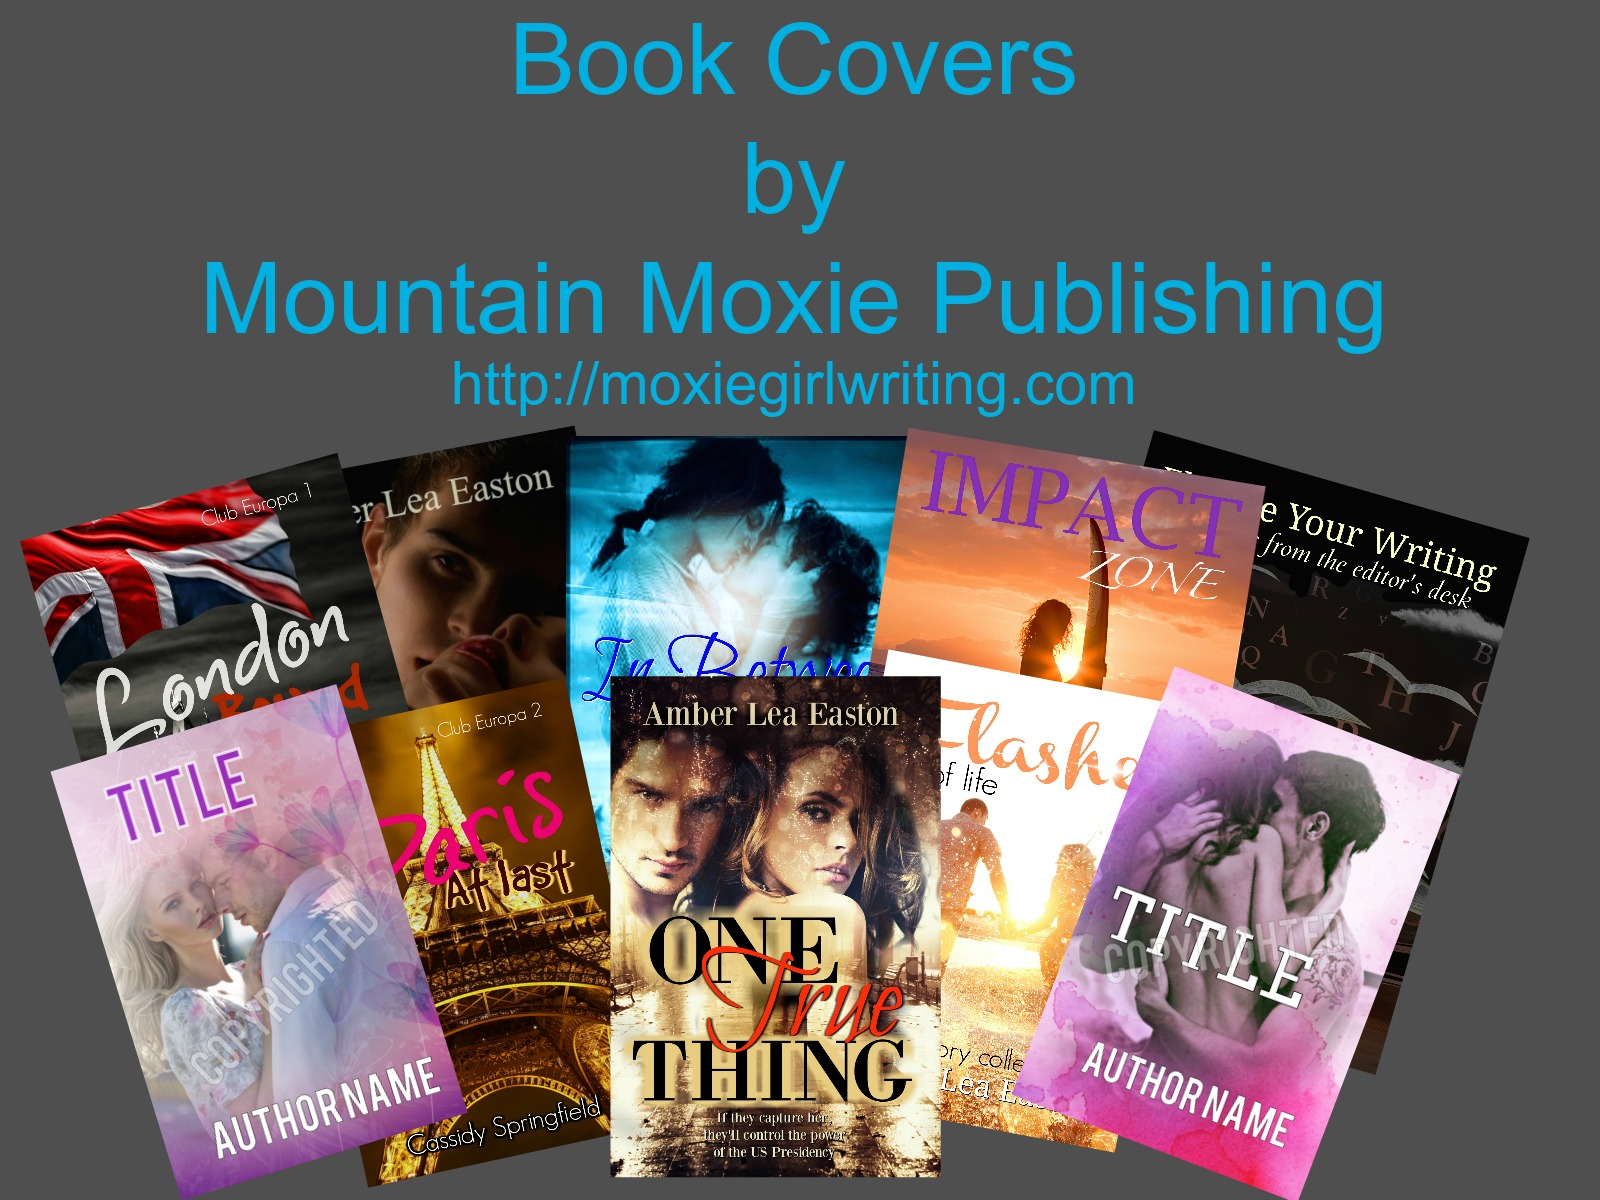 Buy premade book covers